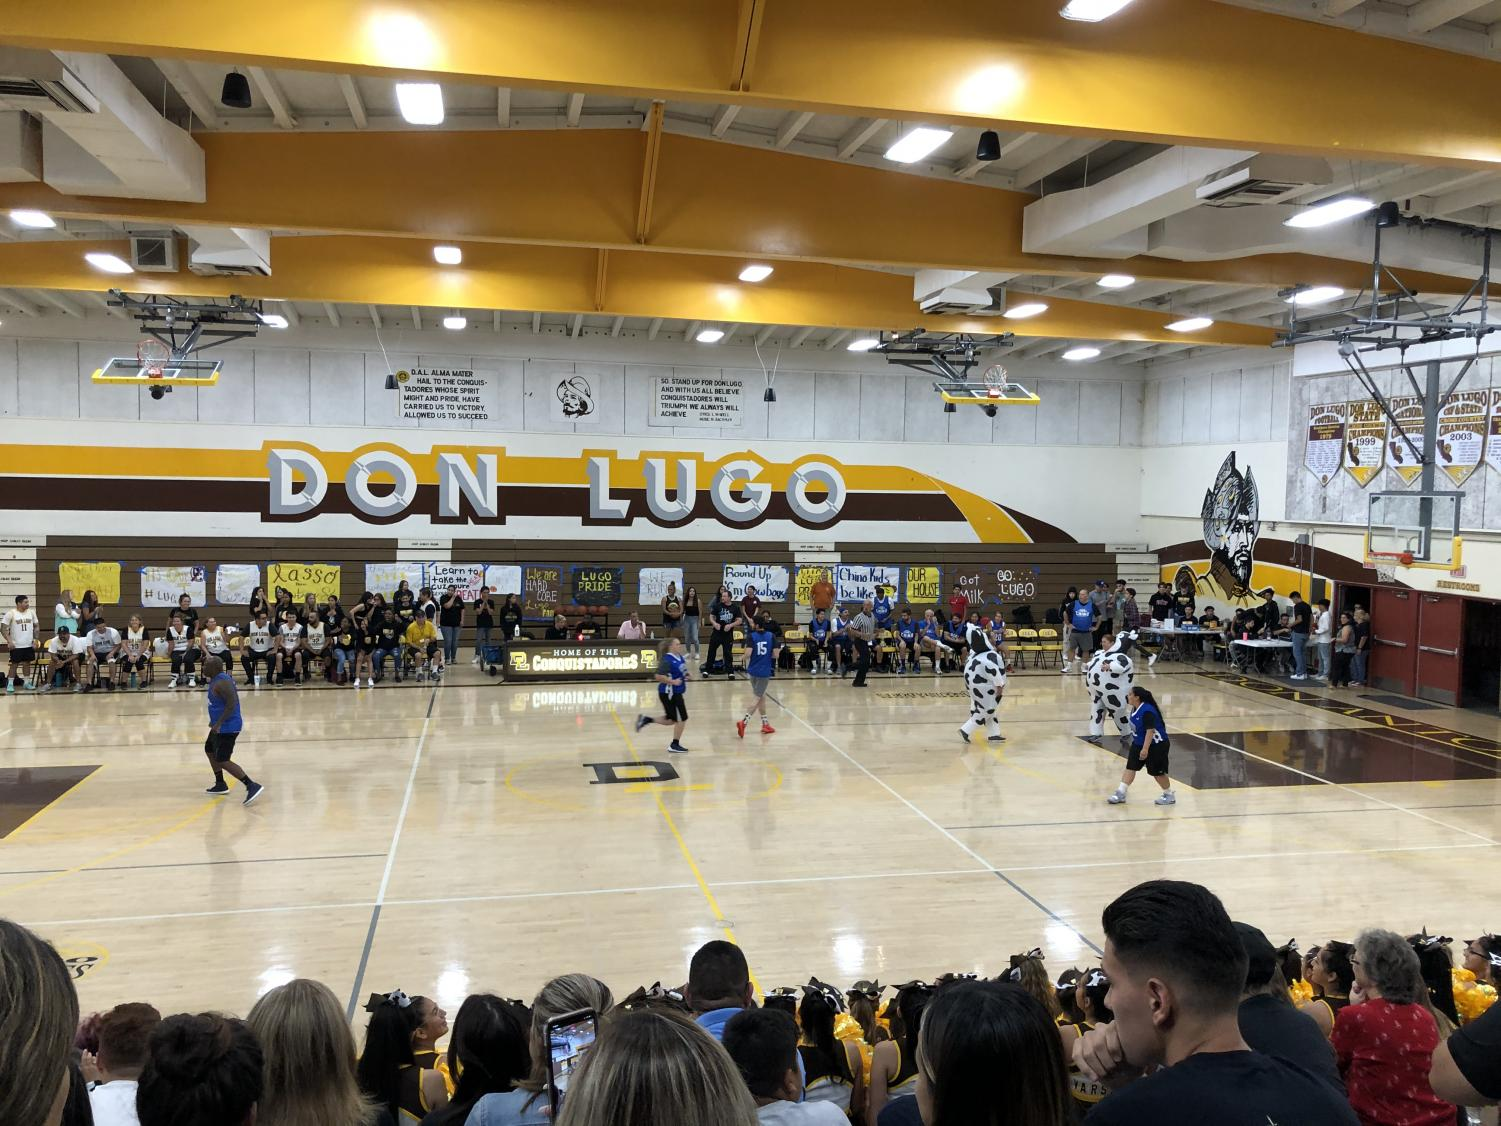 Don Lugo vs Chino HS annual staff basketball game takes place in Don Lugo's gym.